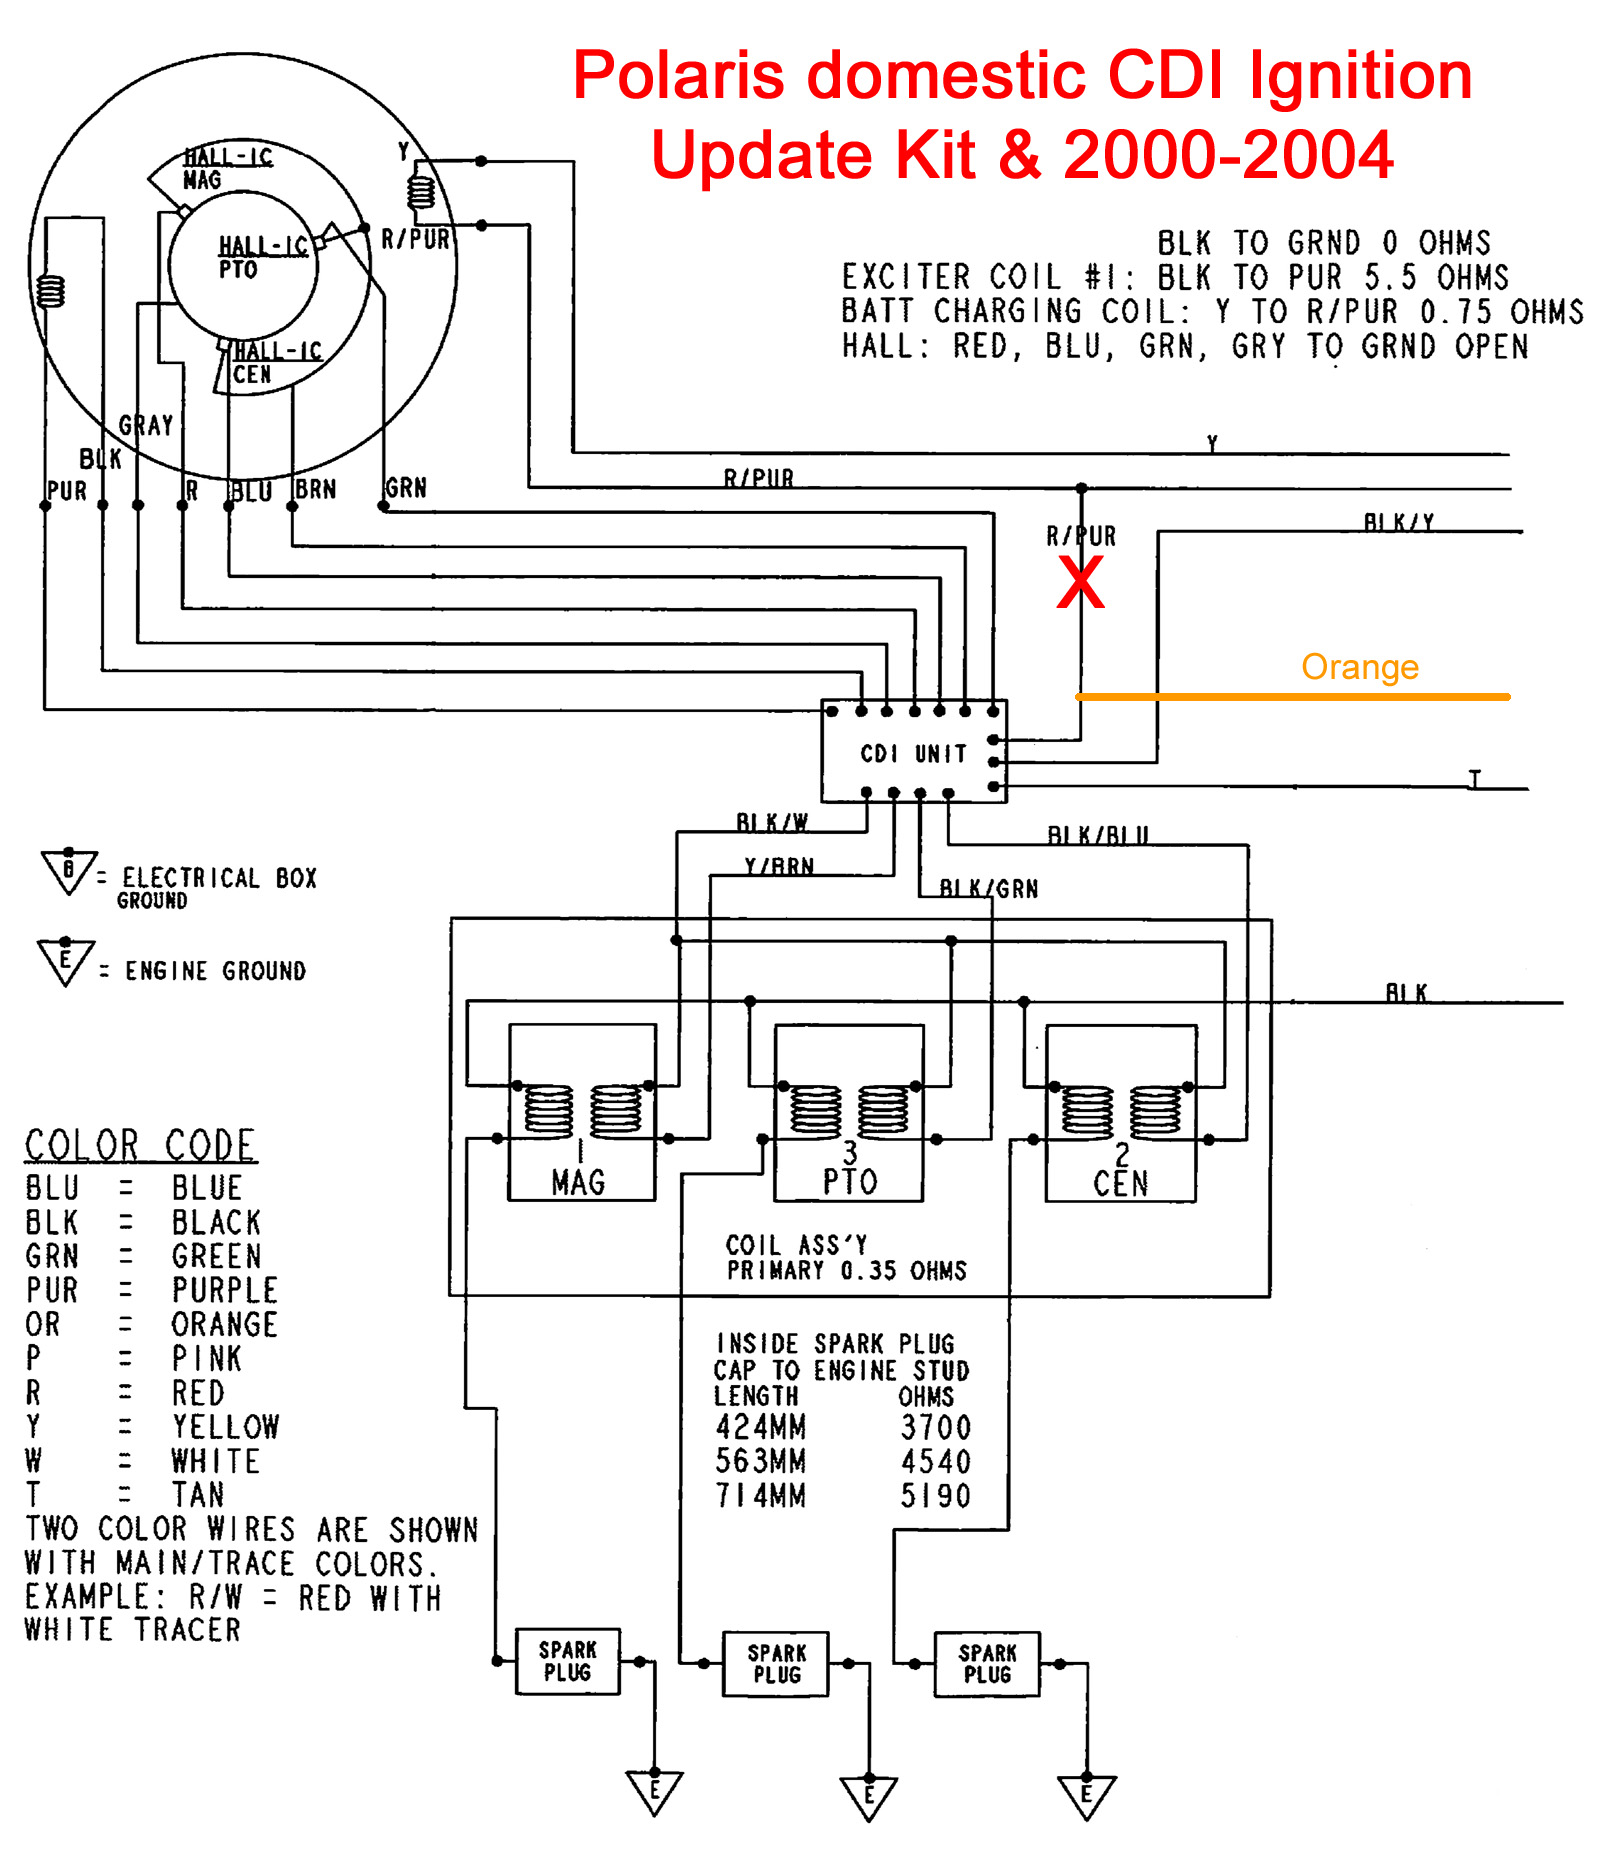 polaris ranger ignition wiring diagram polaris 2004 polaris wiring schematic 2004 auto wiring diagram schematic on polaris ranger ignition wiring diagram